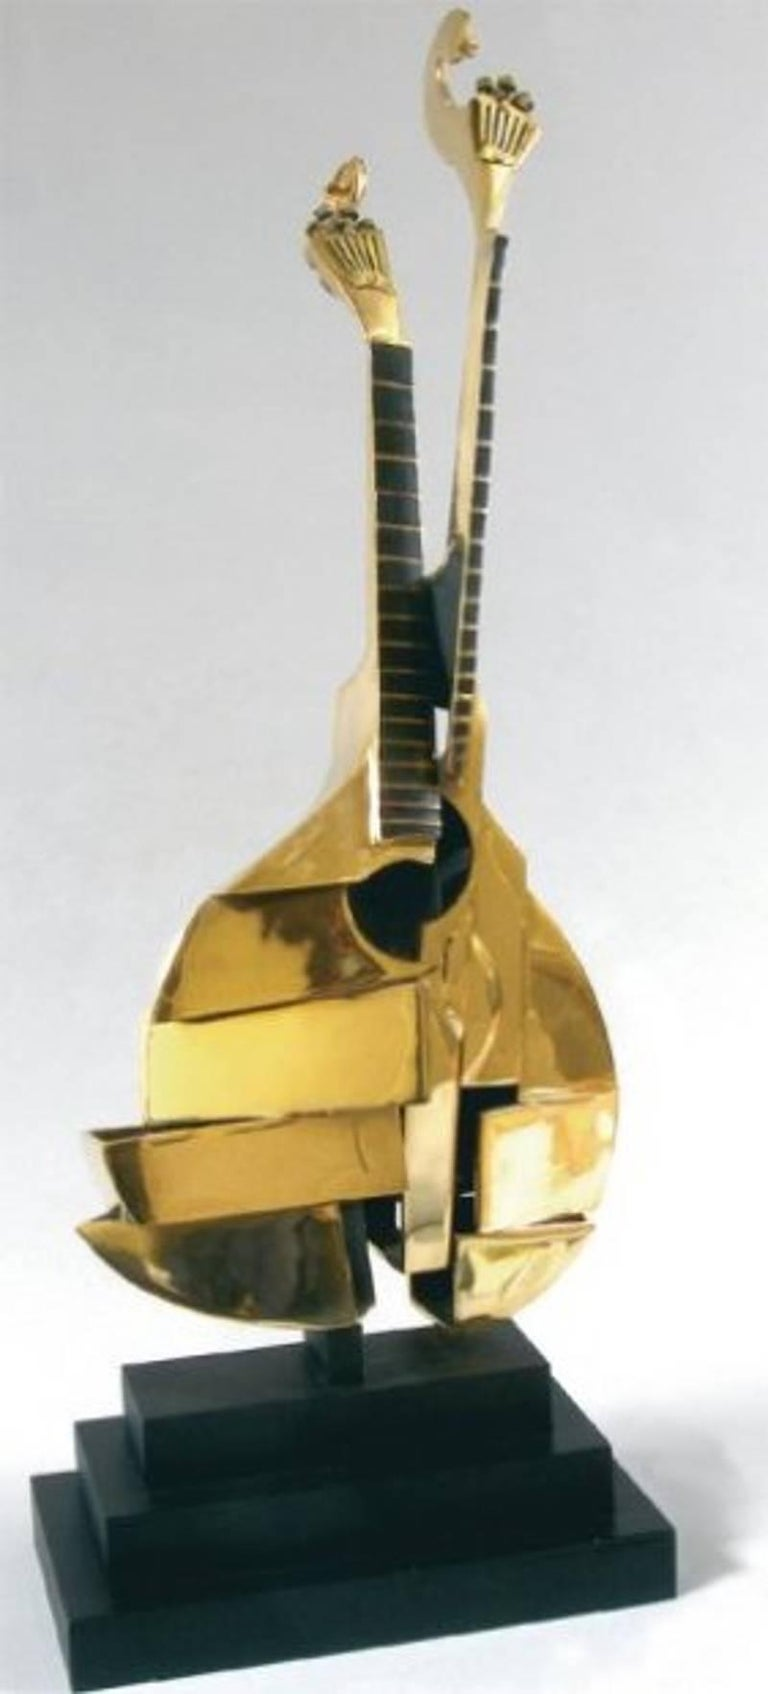 Original Signed and Numbered Bronze Violin Sculpture by Arman Title: Portuguese Guitar Signed and Numbered Edition: 99 Bronze Sculpture on Black base Dimensions: 85 x 35 x 28 cm  Arman is a painter who moved from using objects for the ink or paint